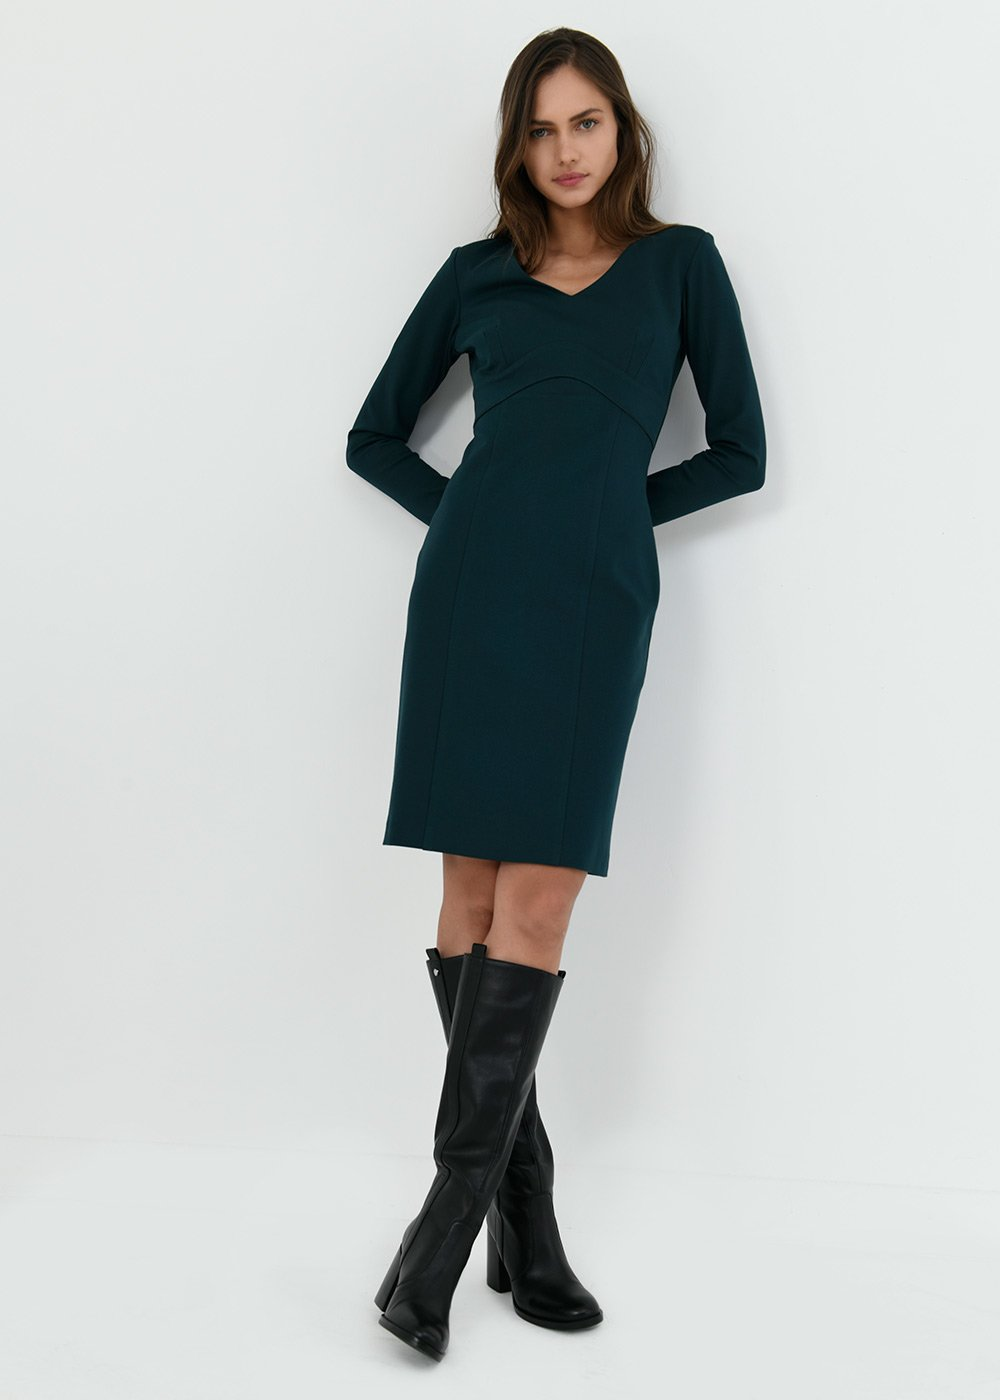 Kate dress in milano stitch - Muschio - Woman